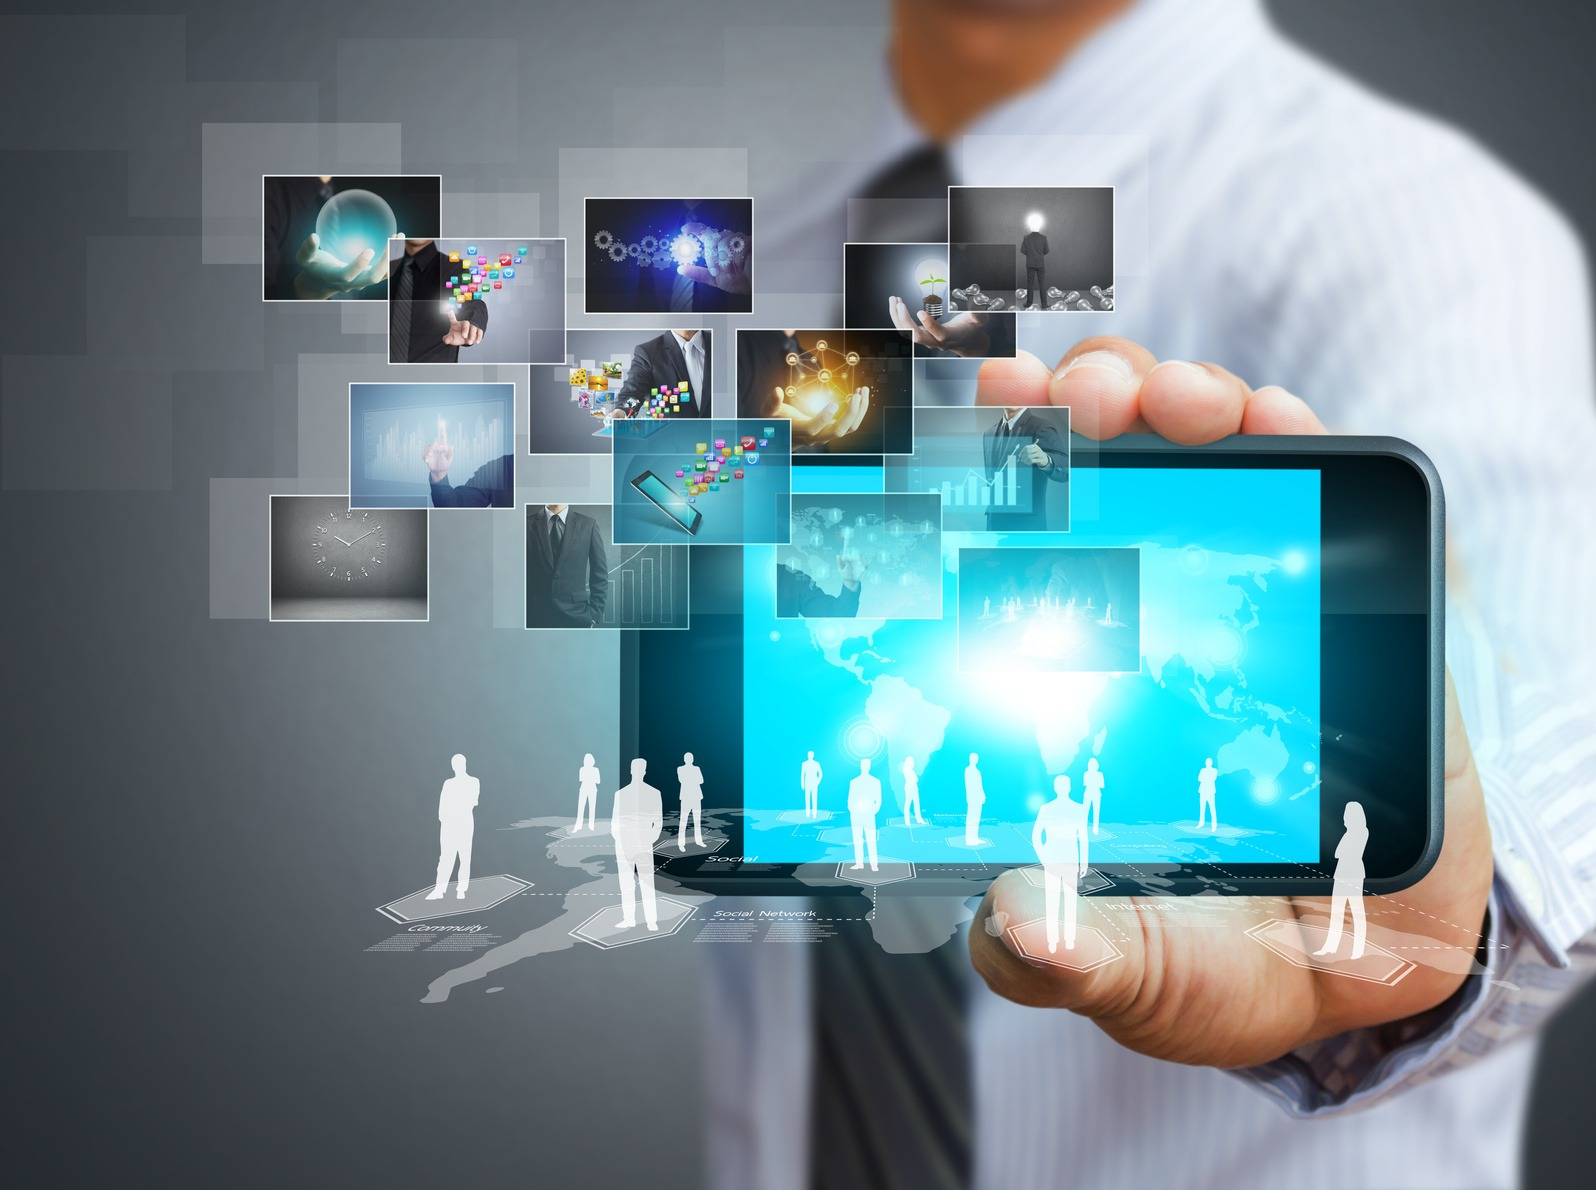 Enterprise Mobility to Revolutionize Brands and Businesses